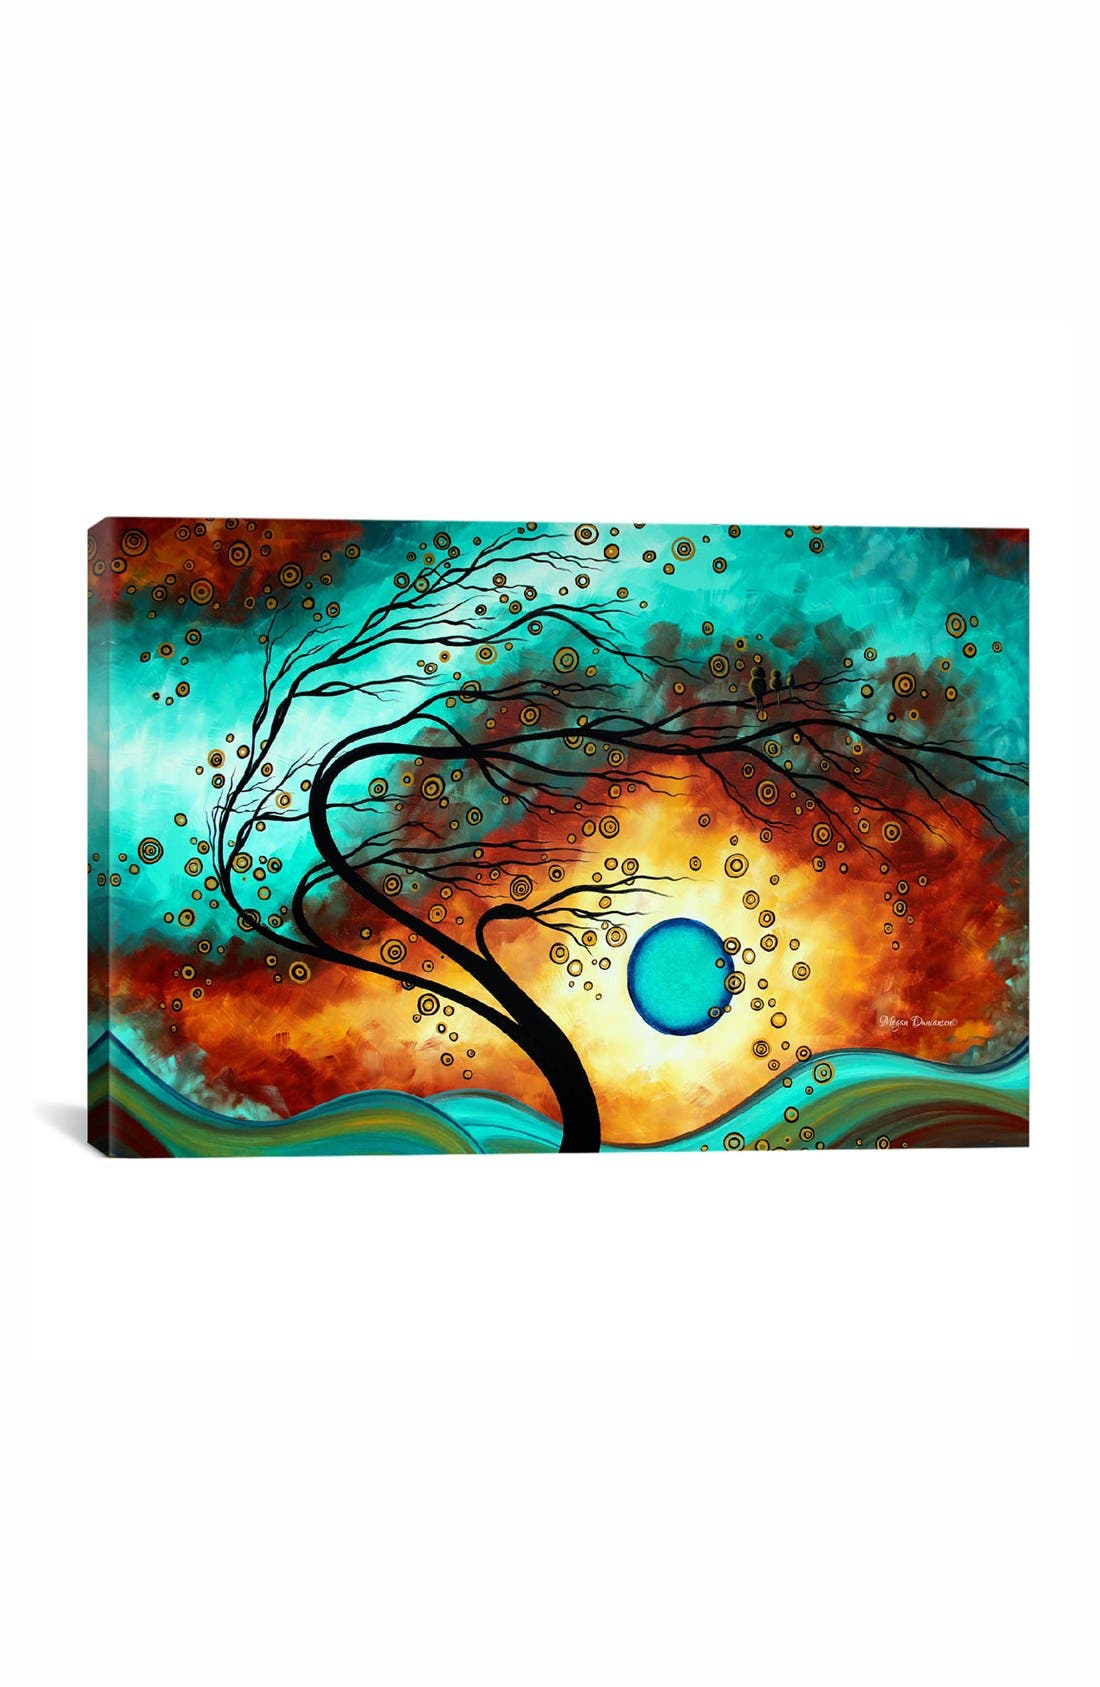 Alternate Image 1 Selected - iCanvas 'Family Joy - Megan Duncanson' Giclée Print Canvas Art